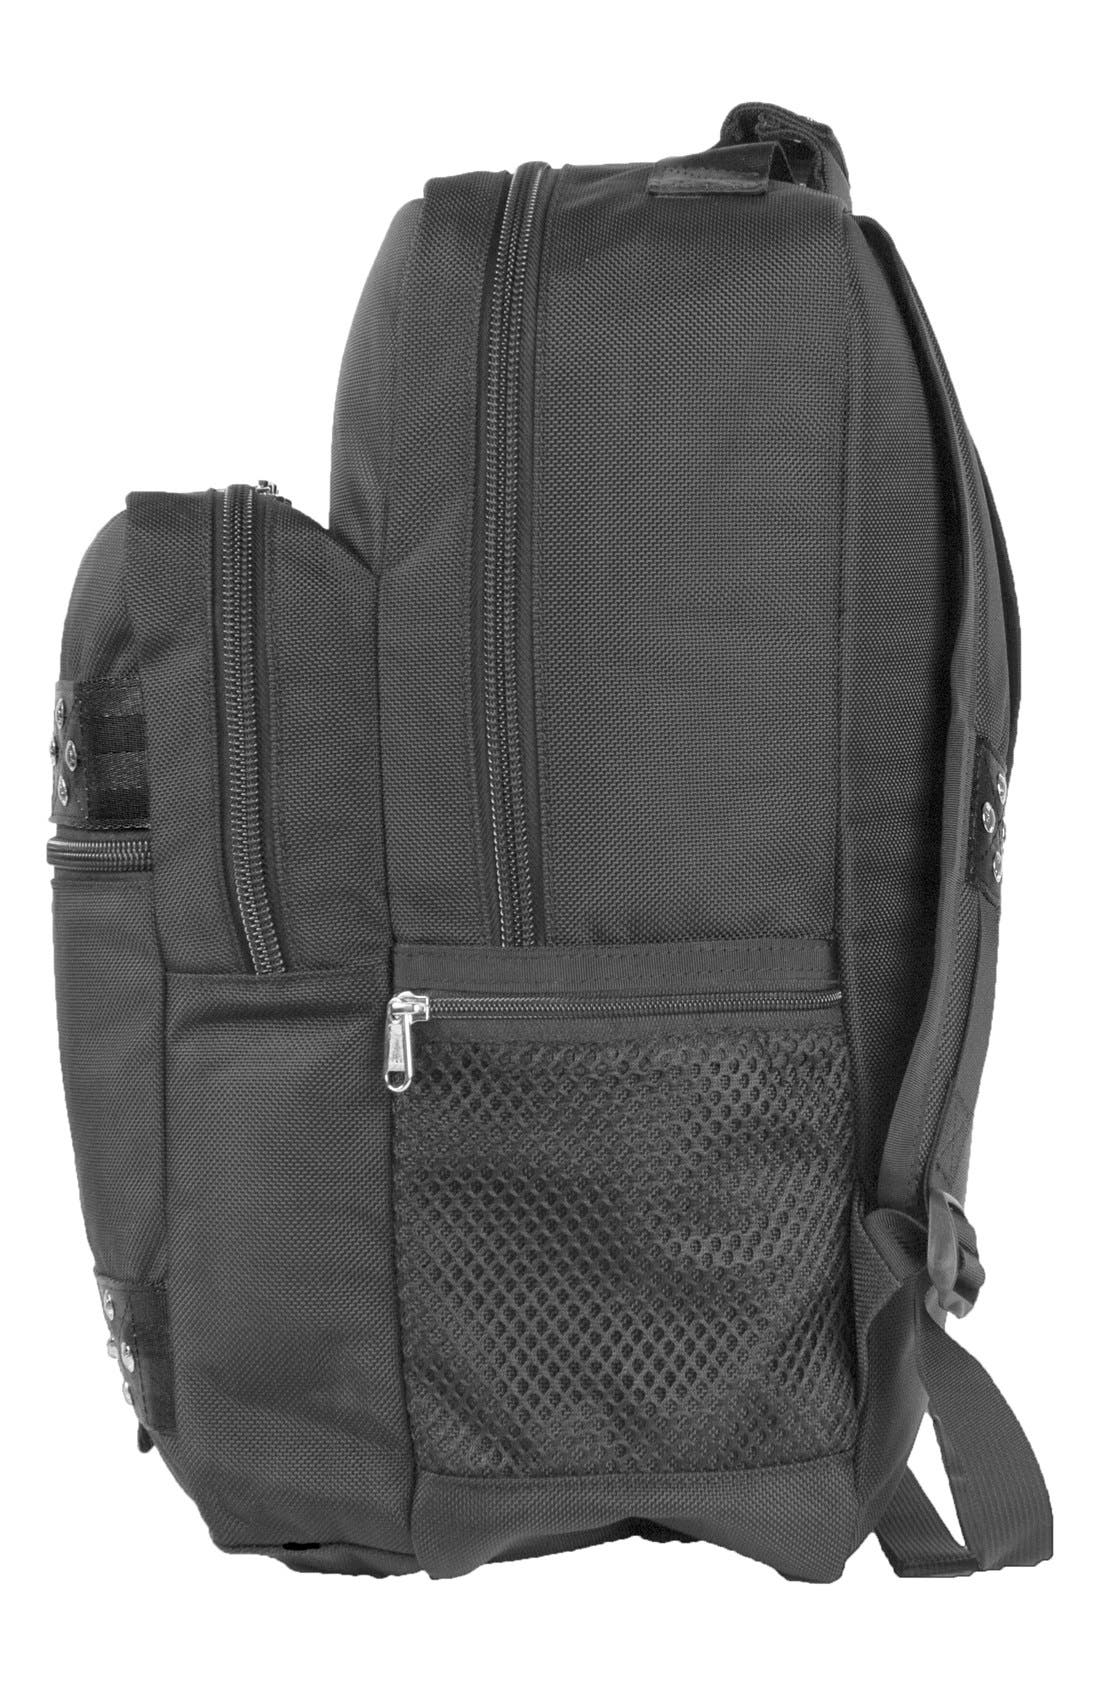 'TRS Ballistic - Executive' Backpack,                             Alternate thumbnail 3, color,                             BLACK/ BLACK